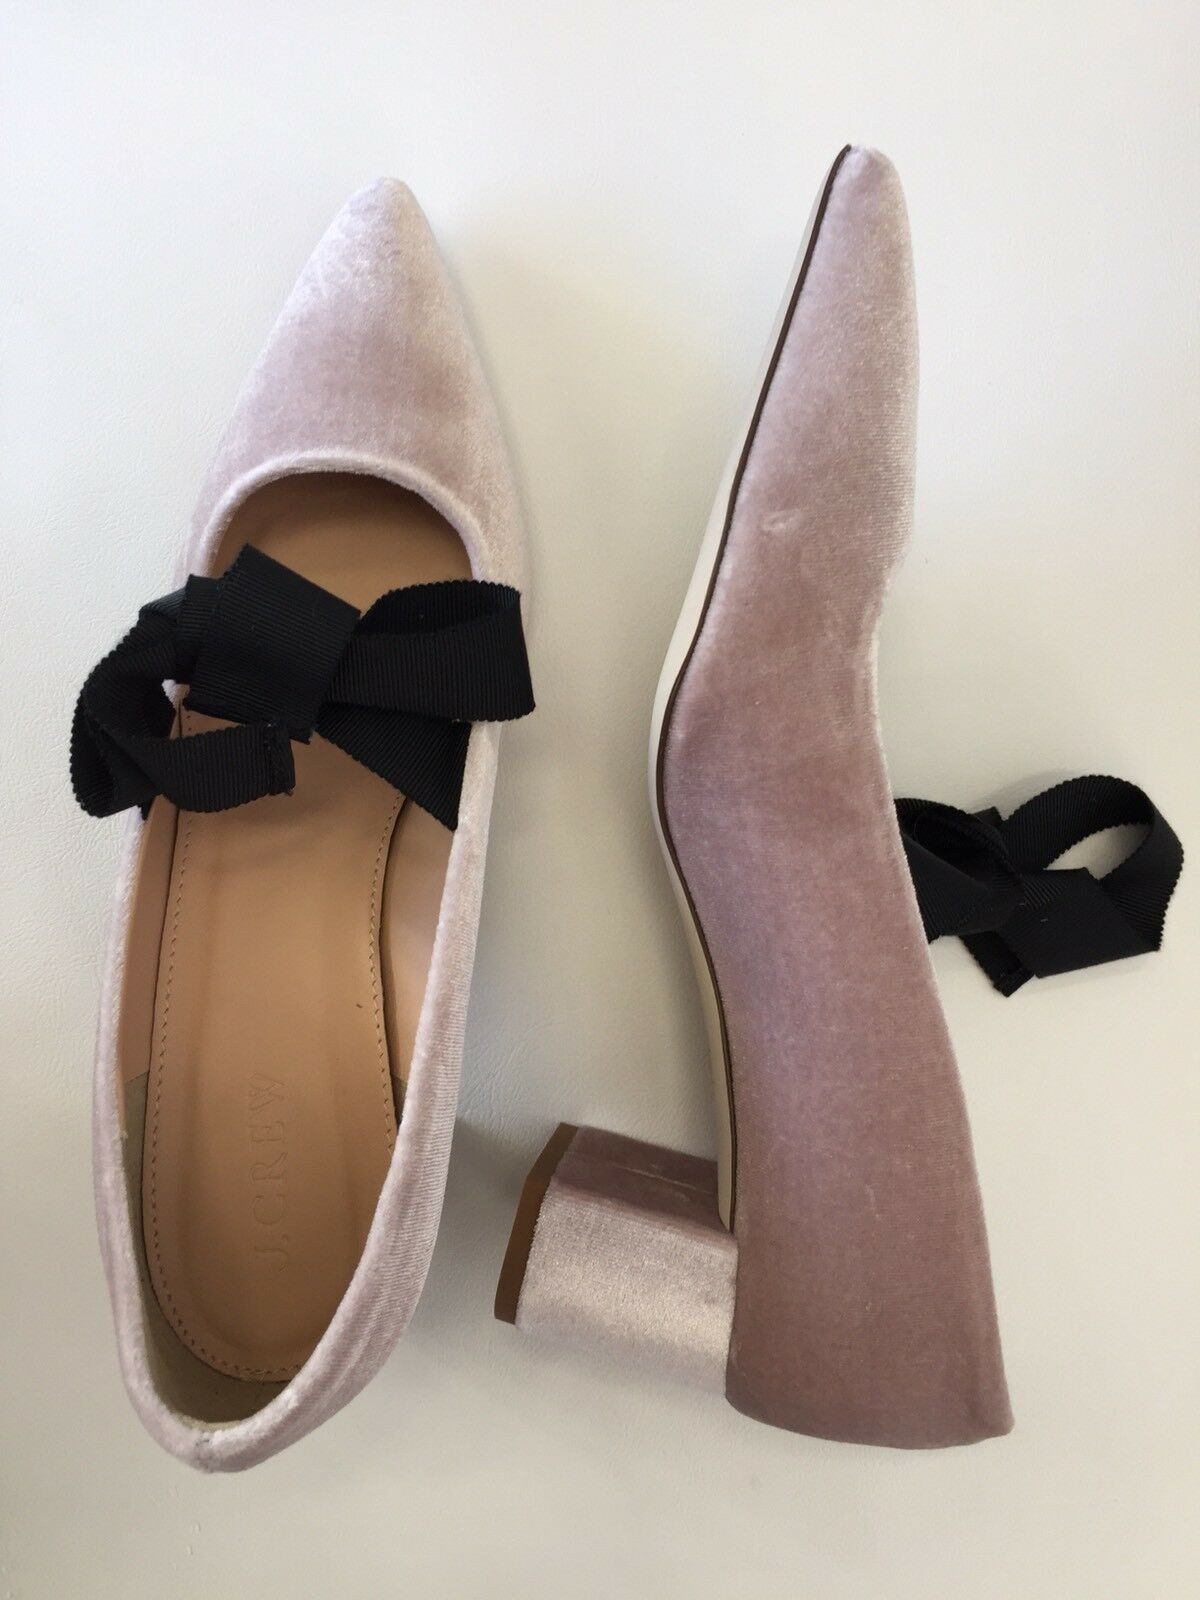 NEW J.Crew Avery Velvet Pumps with Bow Sz 7 VINTAGE QUARTZ Pink shoes H1859